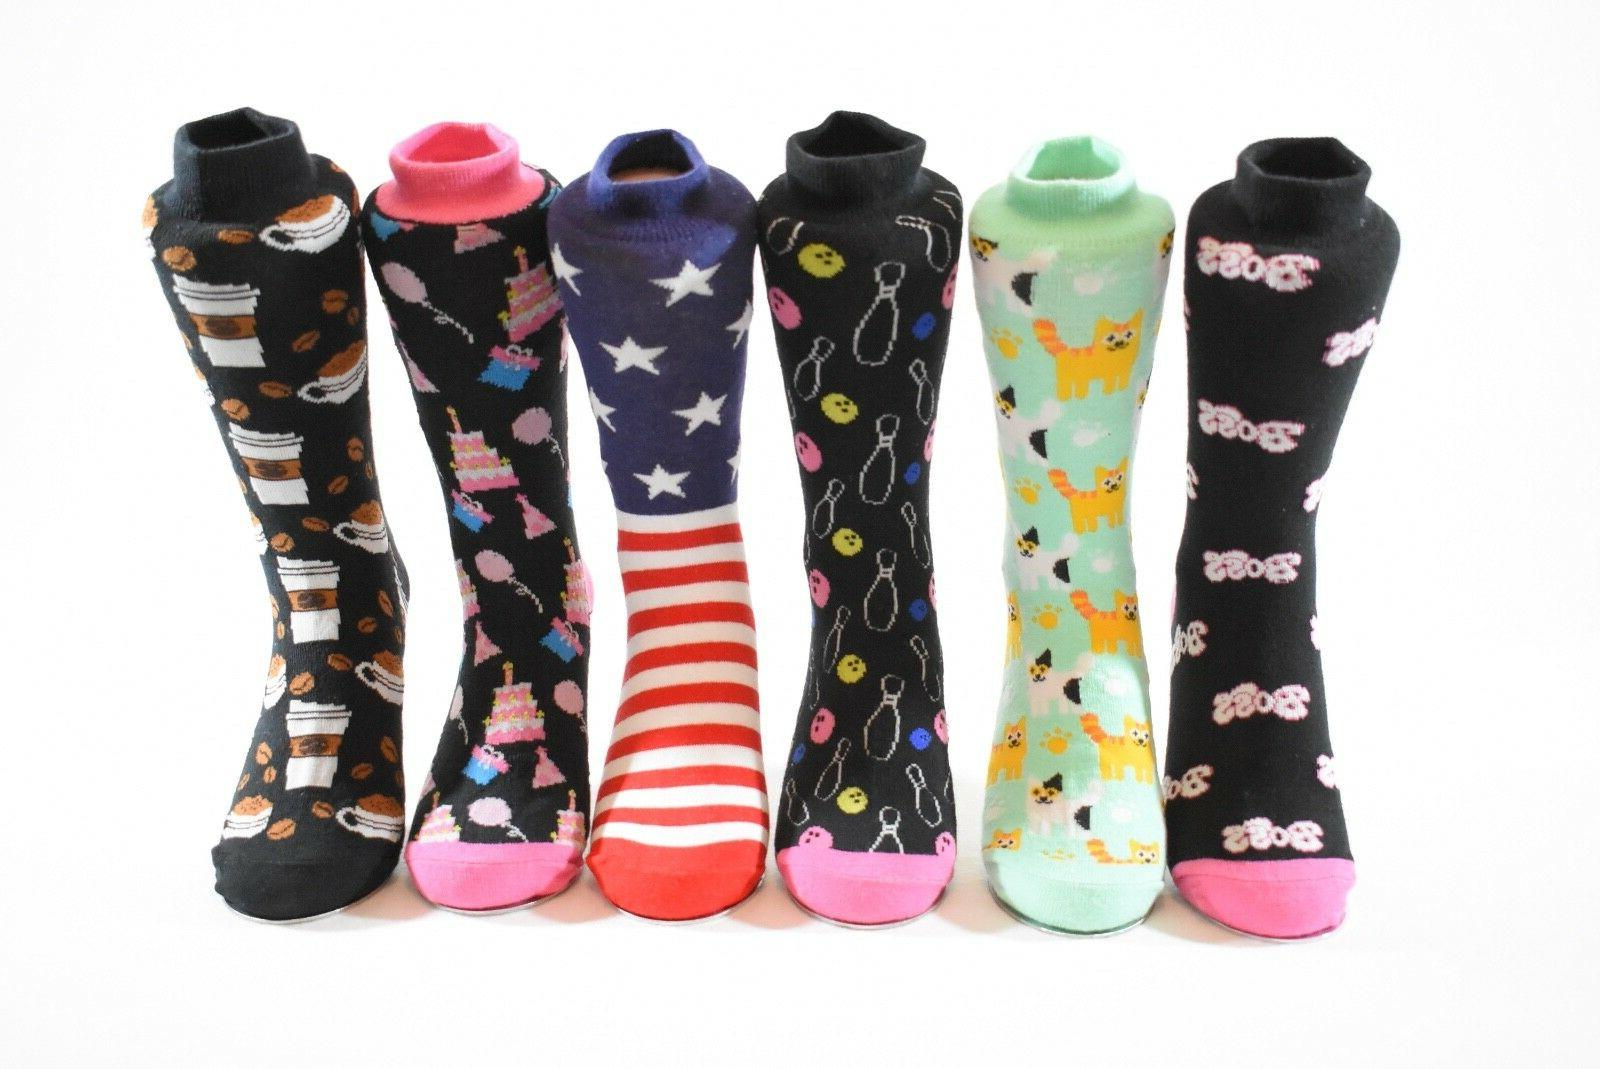 Women's Socks Dice, Clover, Flag, Lips, 4-10